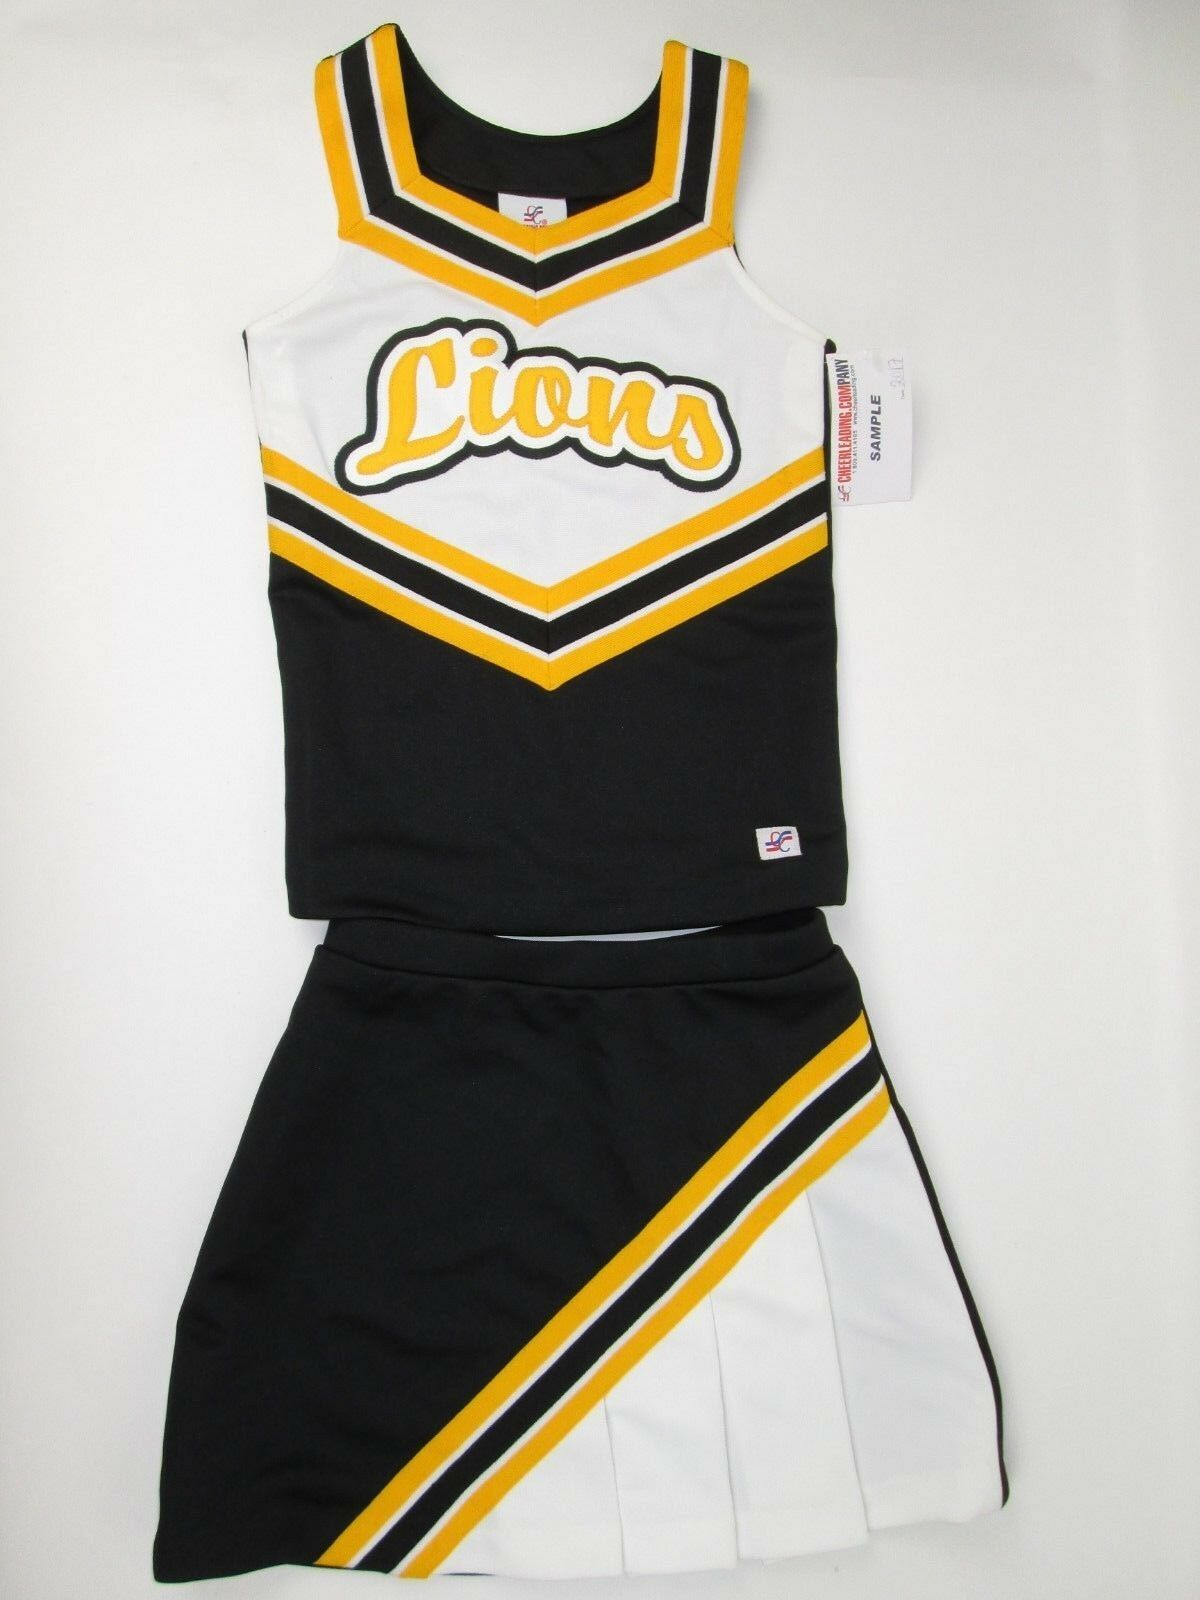 NEW LIONS Cheerleader Uniform Outfit Costume Youth Teen 32  Top Elastic Skirt